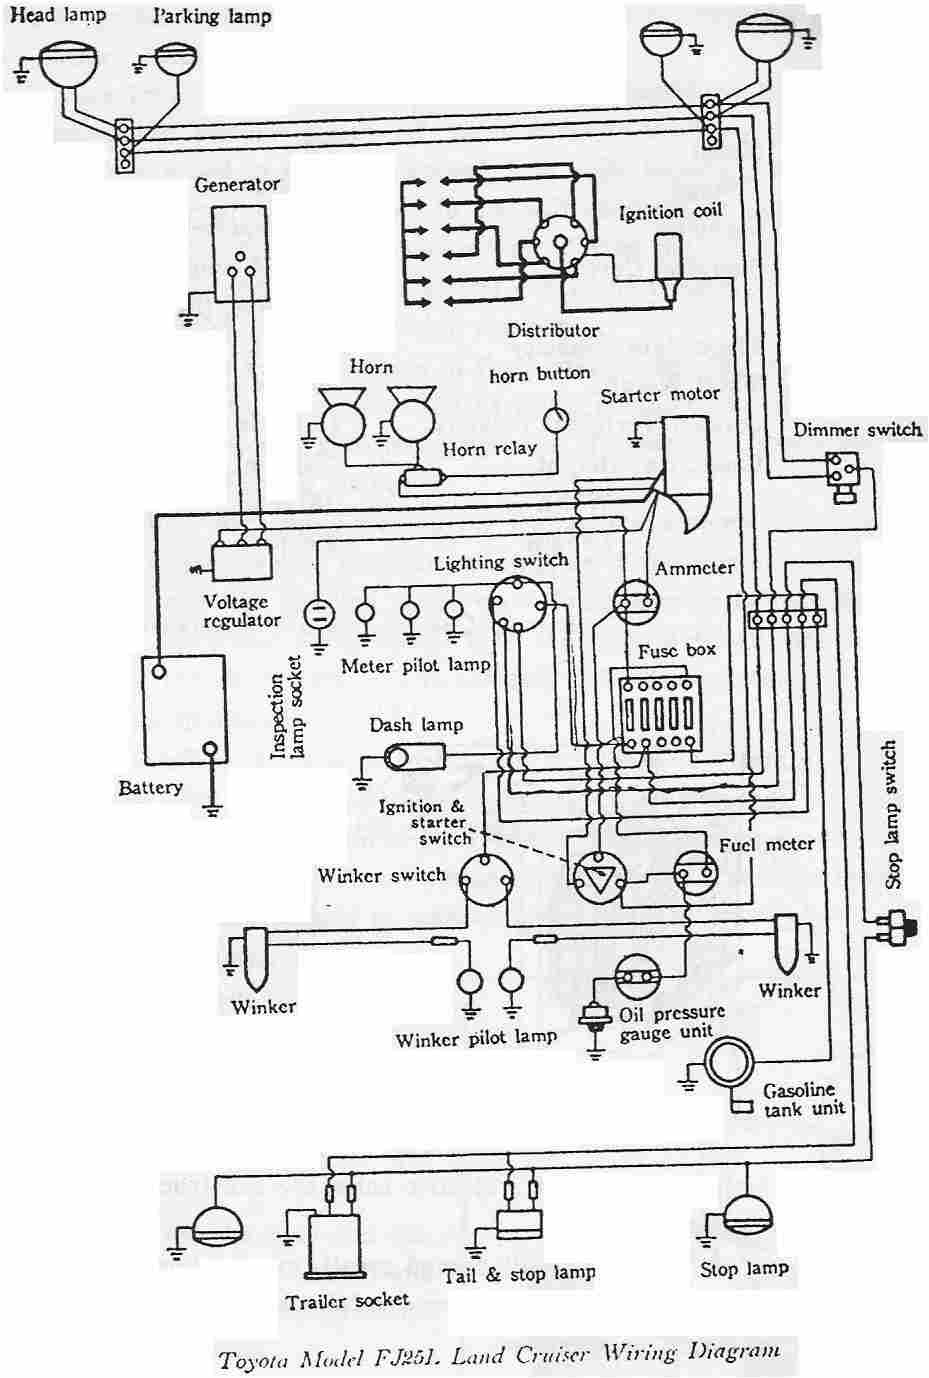 Toyota land cruiser fj electrical wiring diagram all